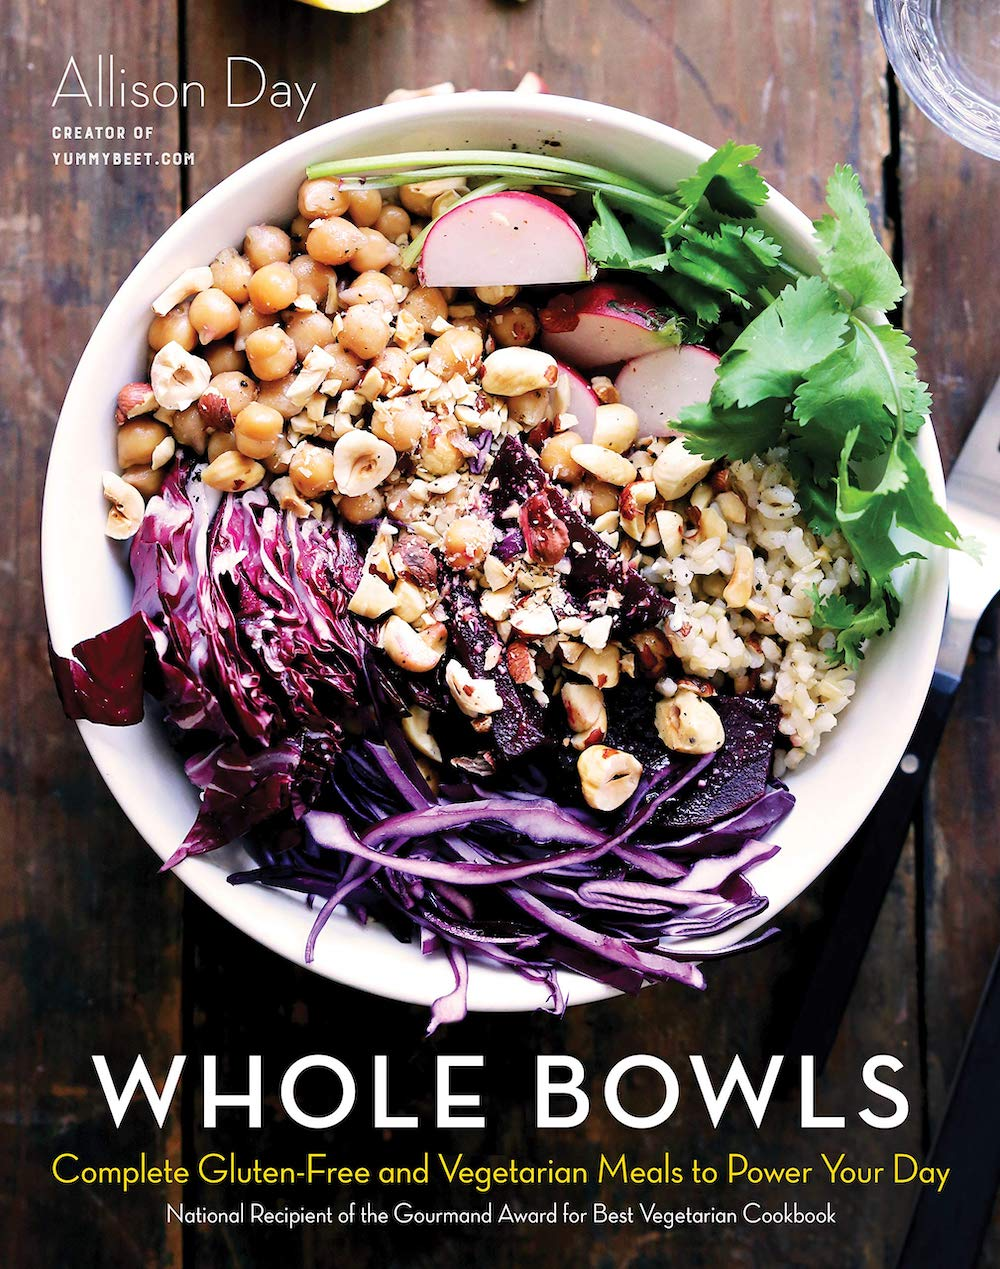 Whole Bowls by Allison Day of YummyBeet.com cookbook ideas